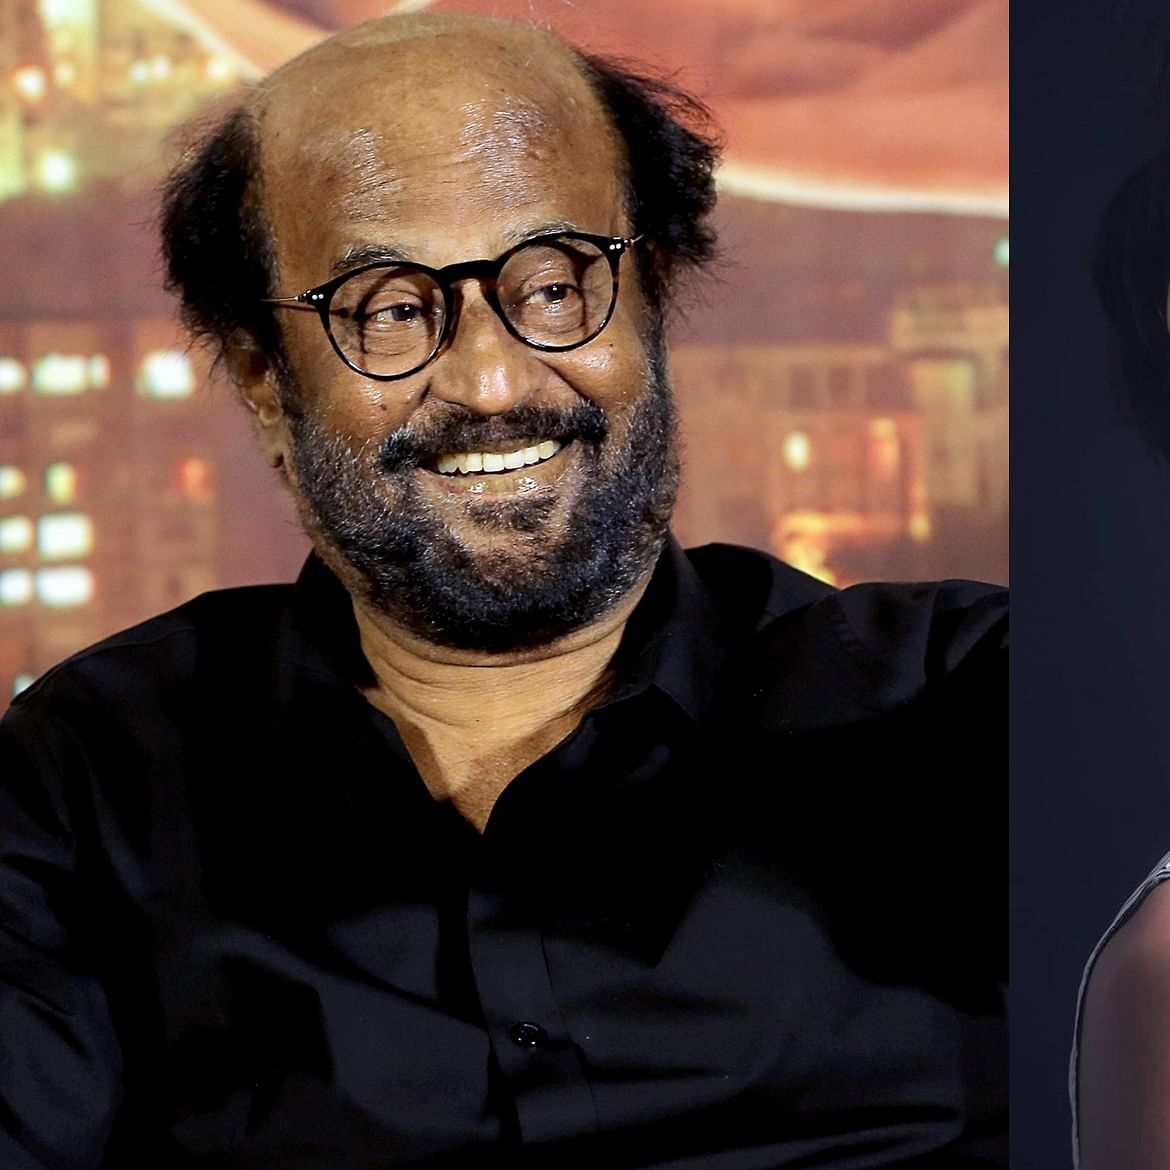 'Massive icons should be very careful': Actress Kasthuri questions Rajinikanth flying to the US for routine check-up amid travel ban